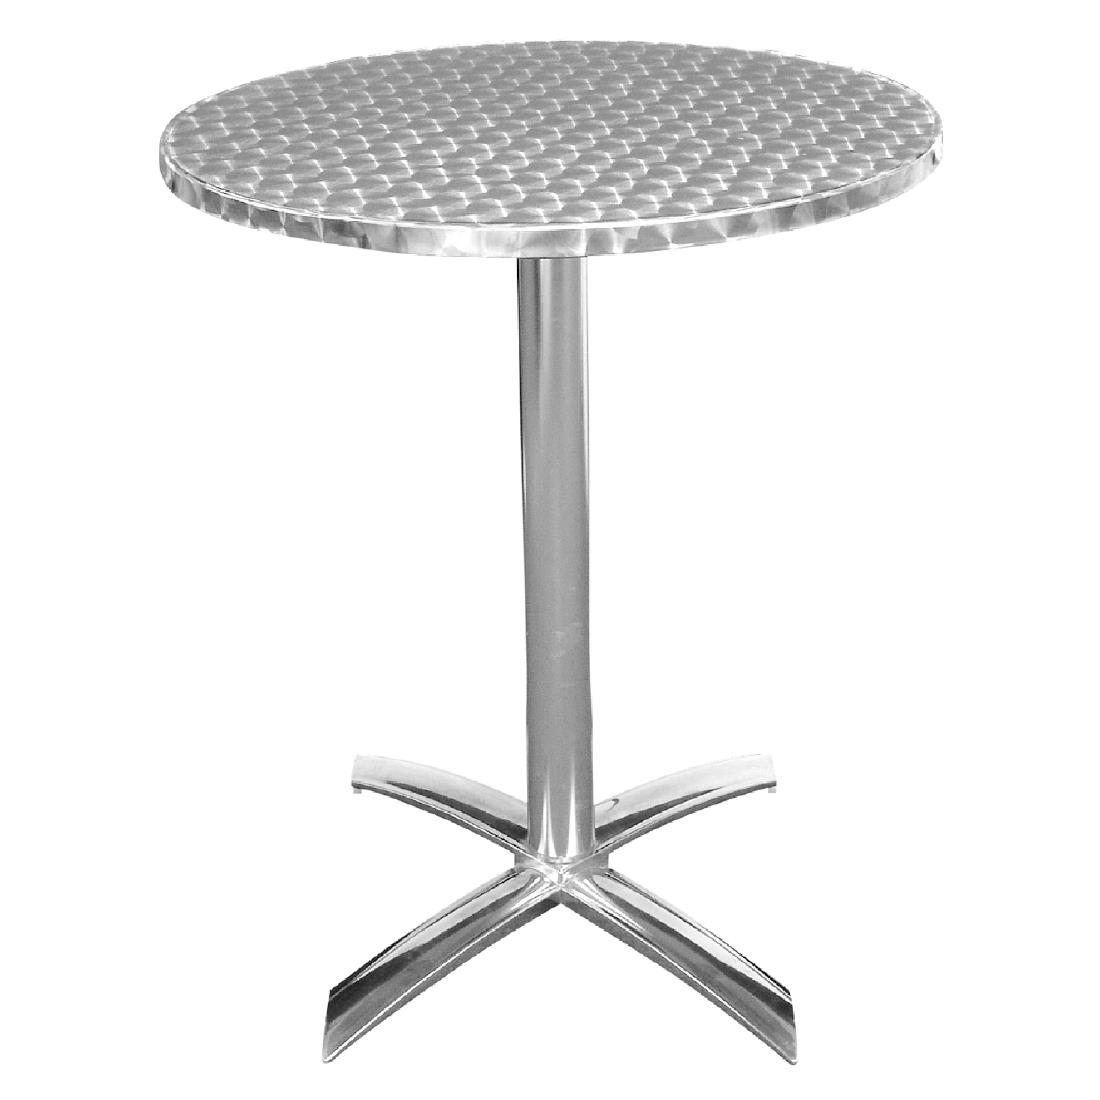 Bolero Flip Top Table Stainless Steel 600mm Outdoor Furniture Cafe Bar